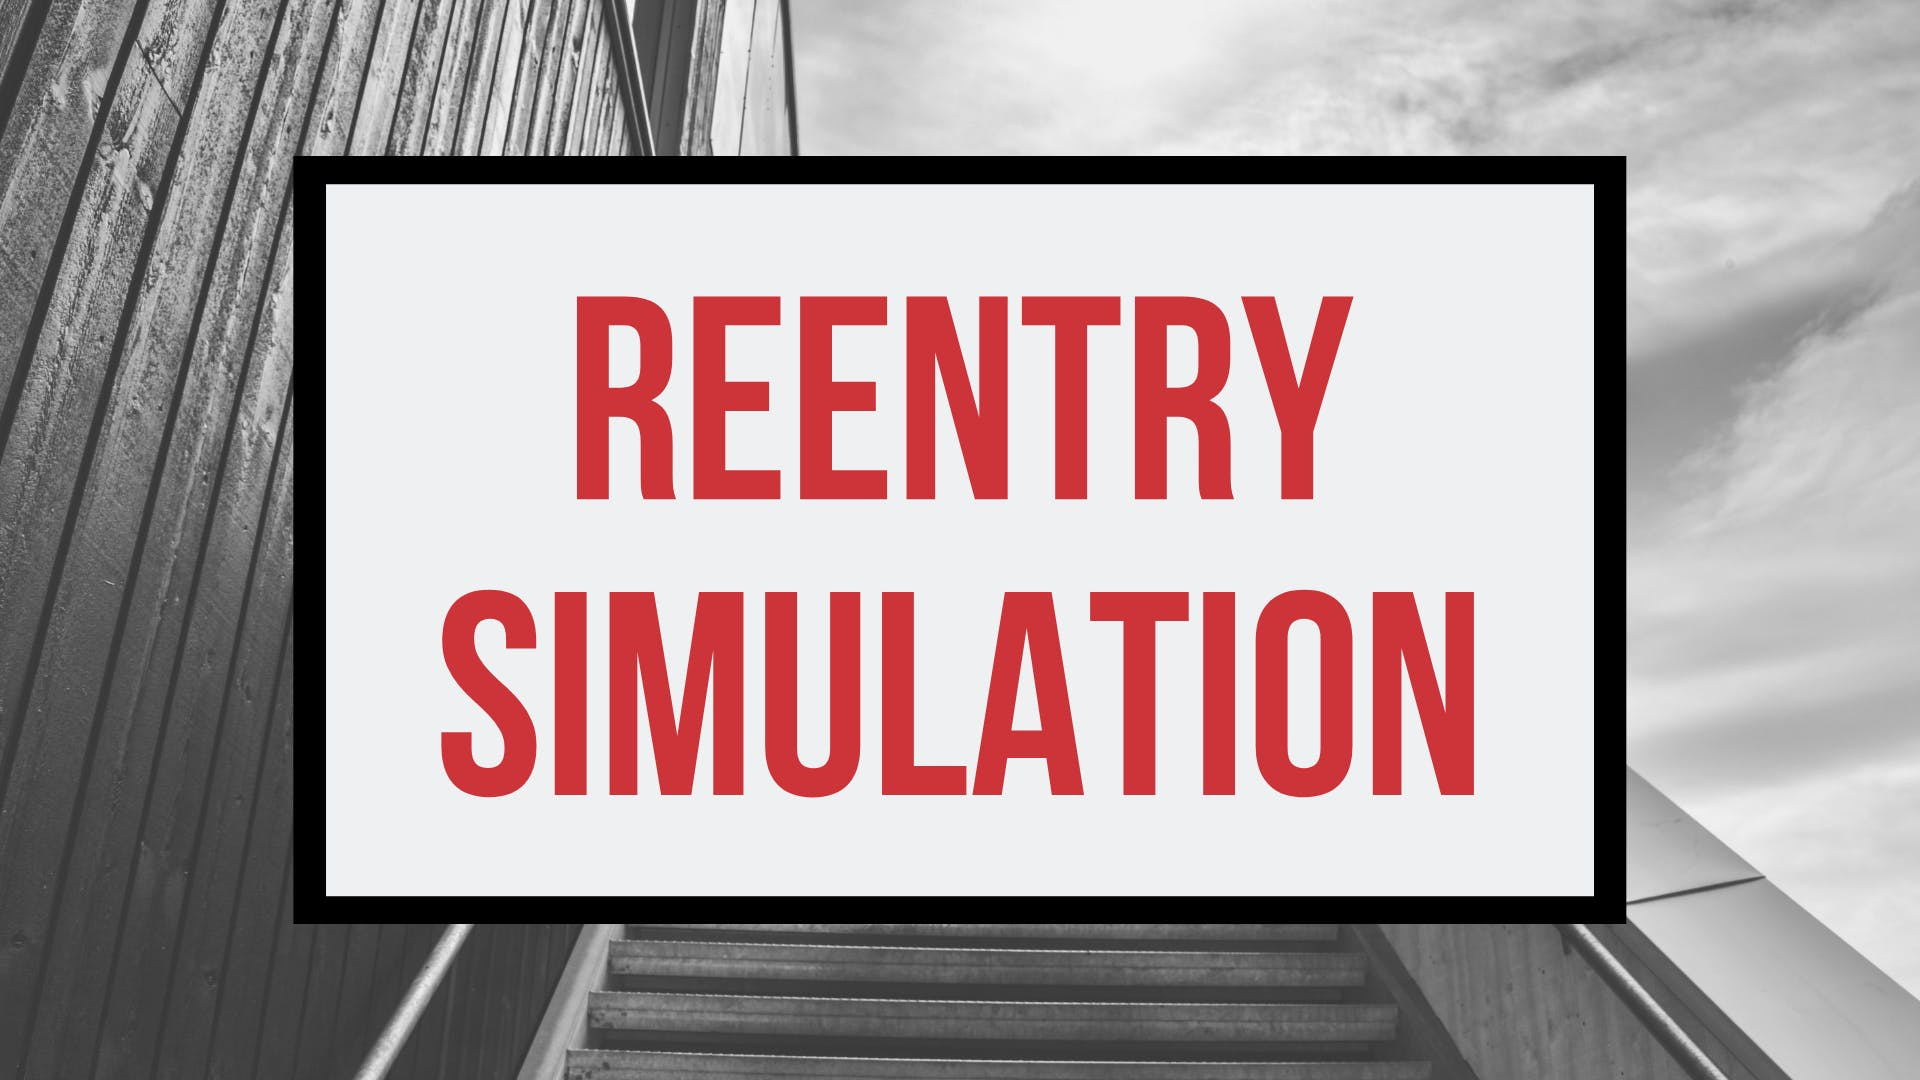 Reentry Simulation: Why Do So Many People Go Back to Prison?